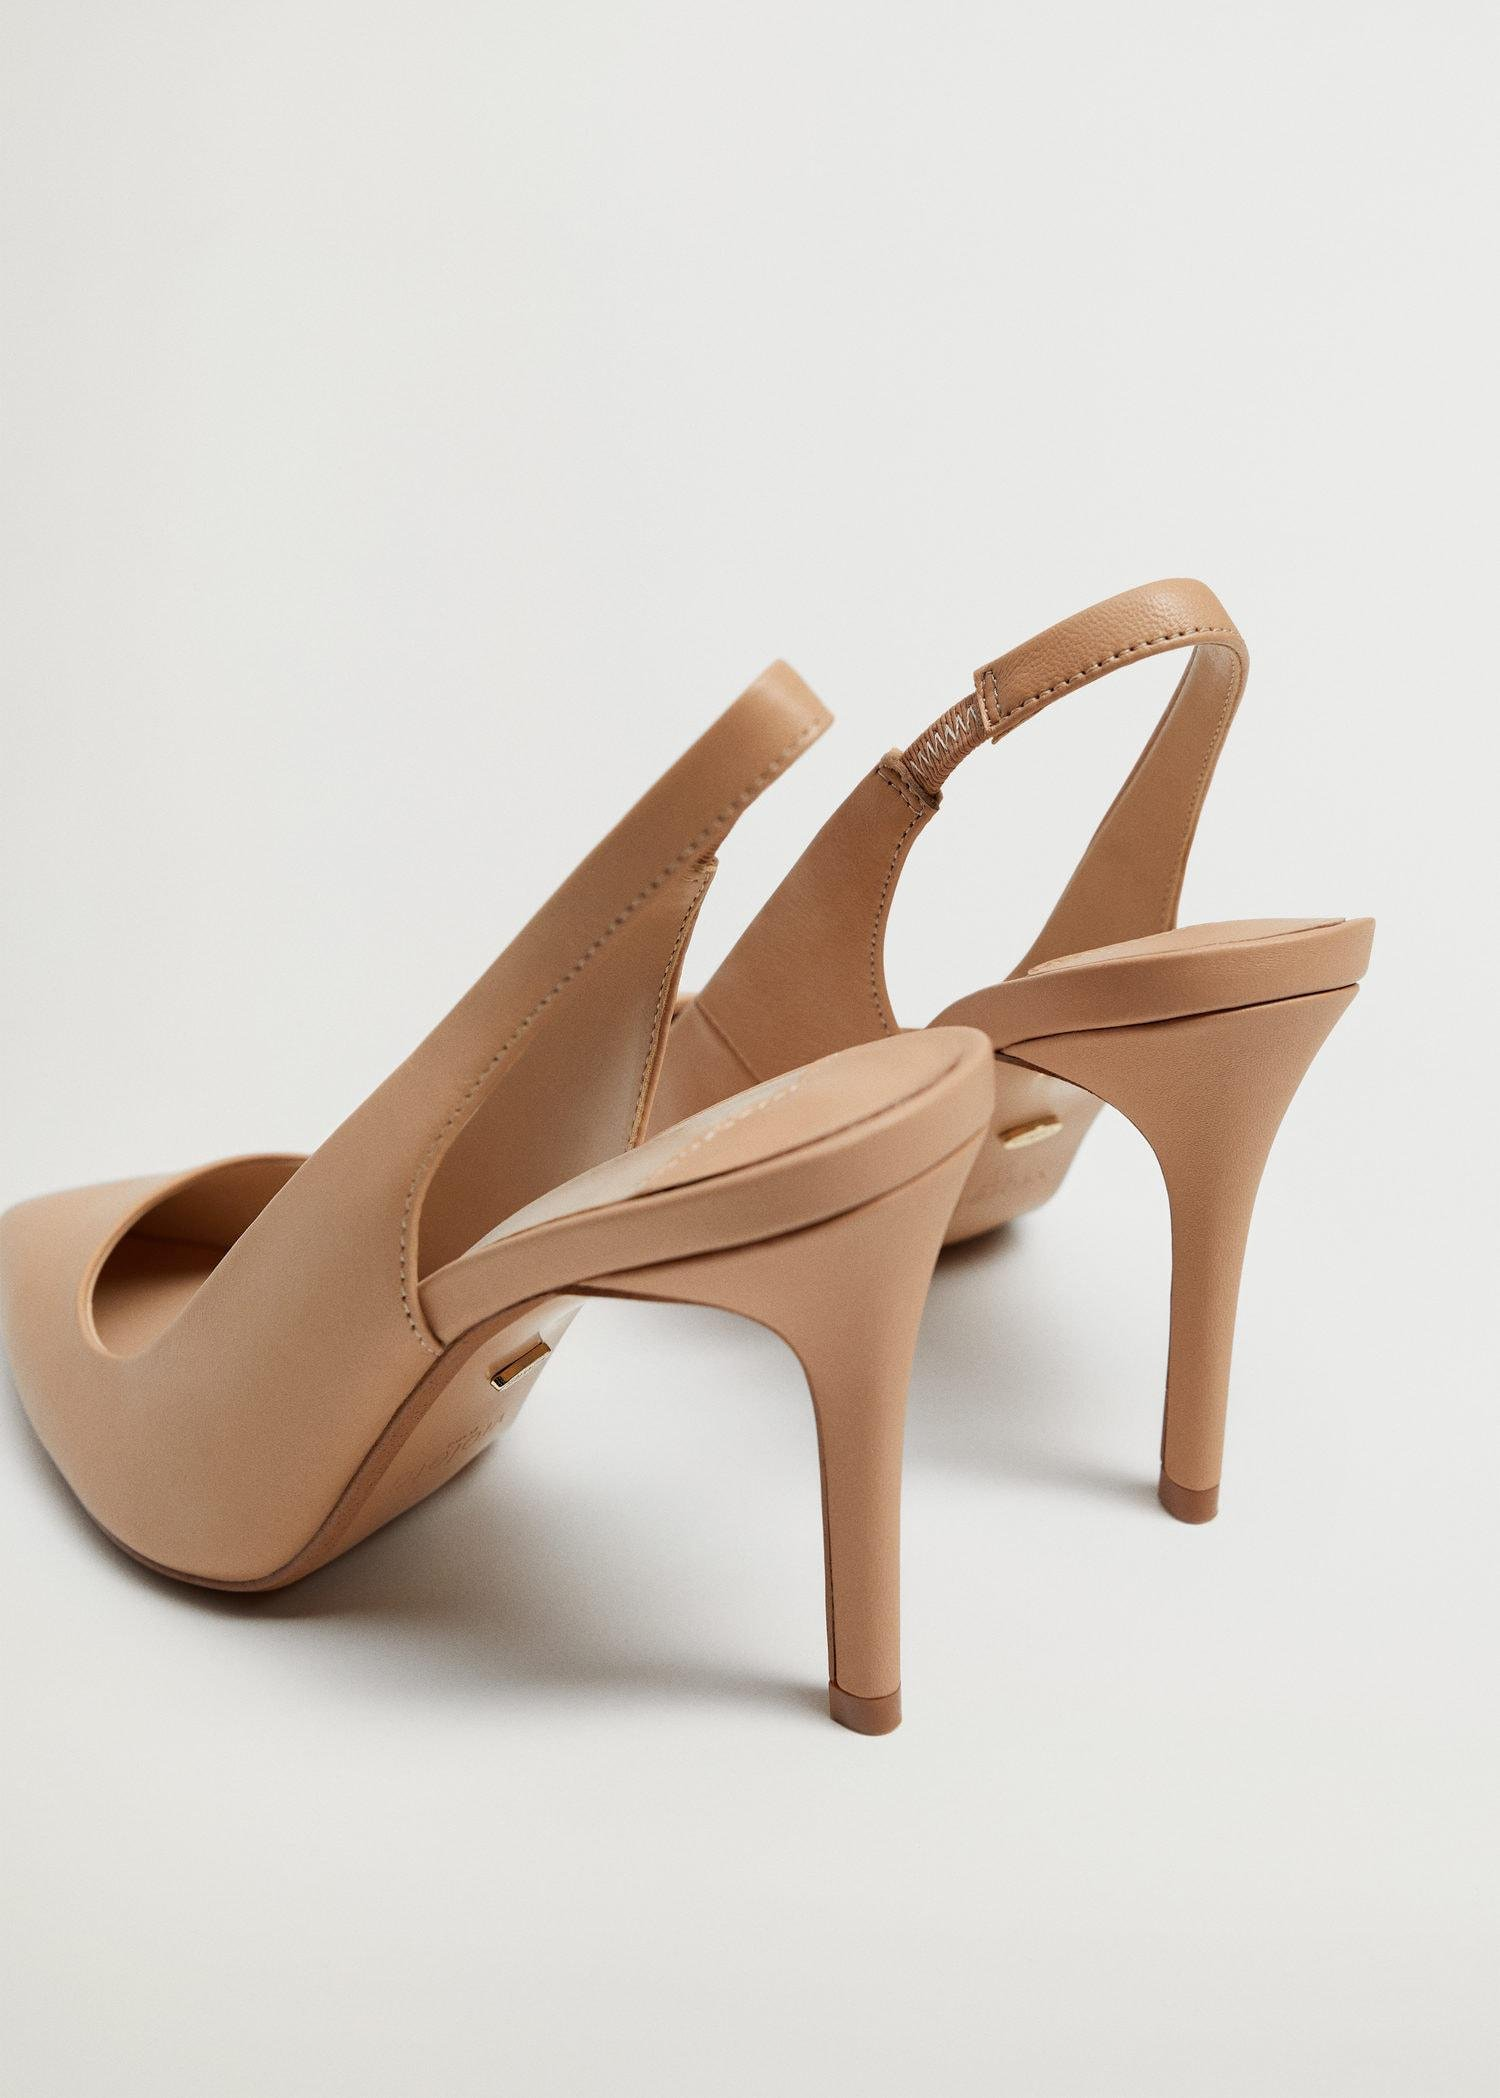 Sling back leather shoes 2